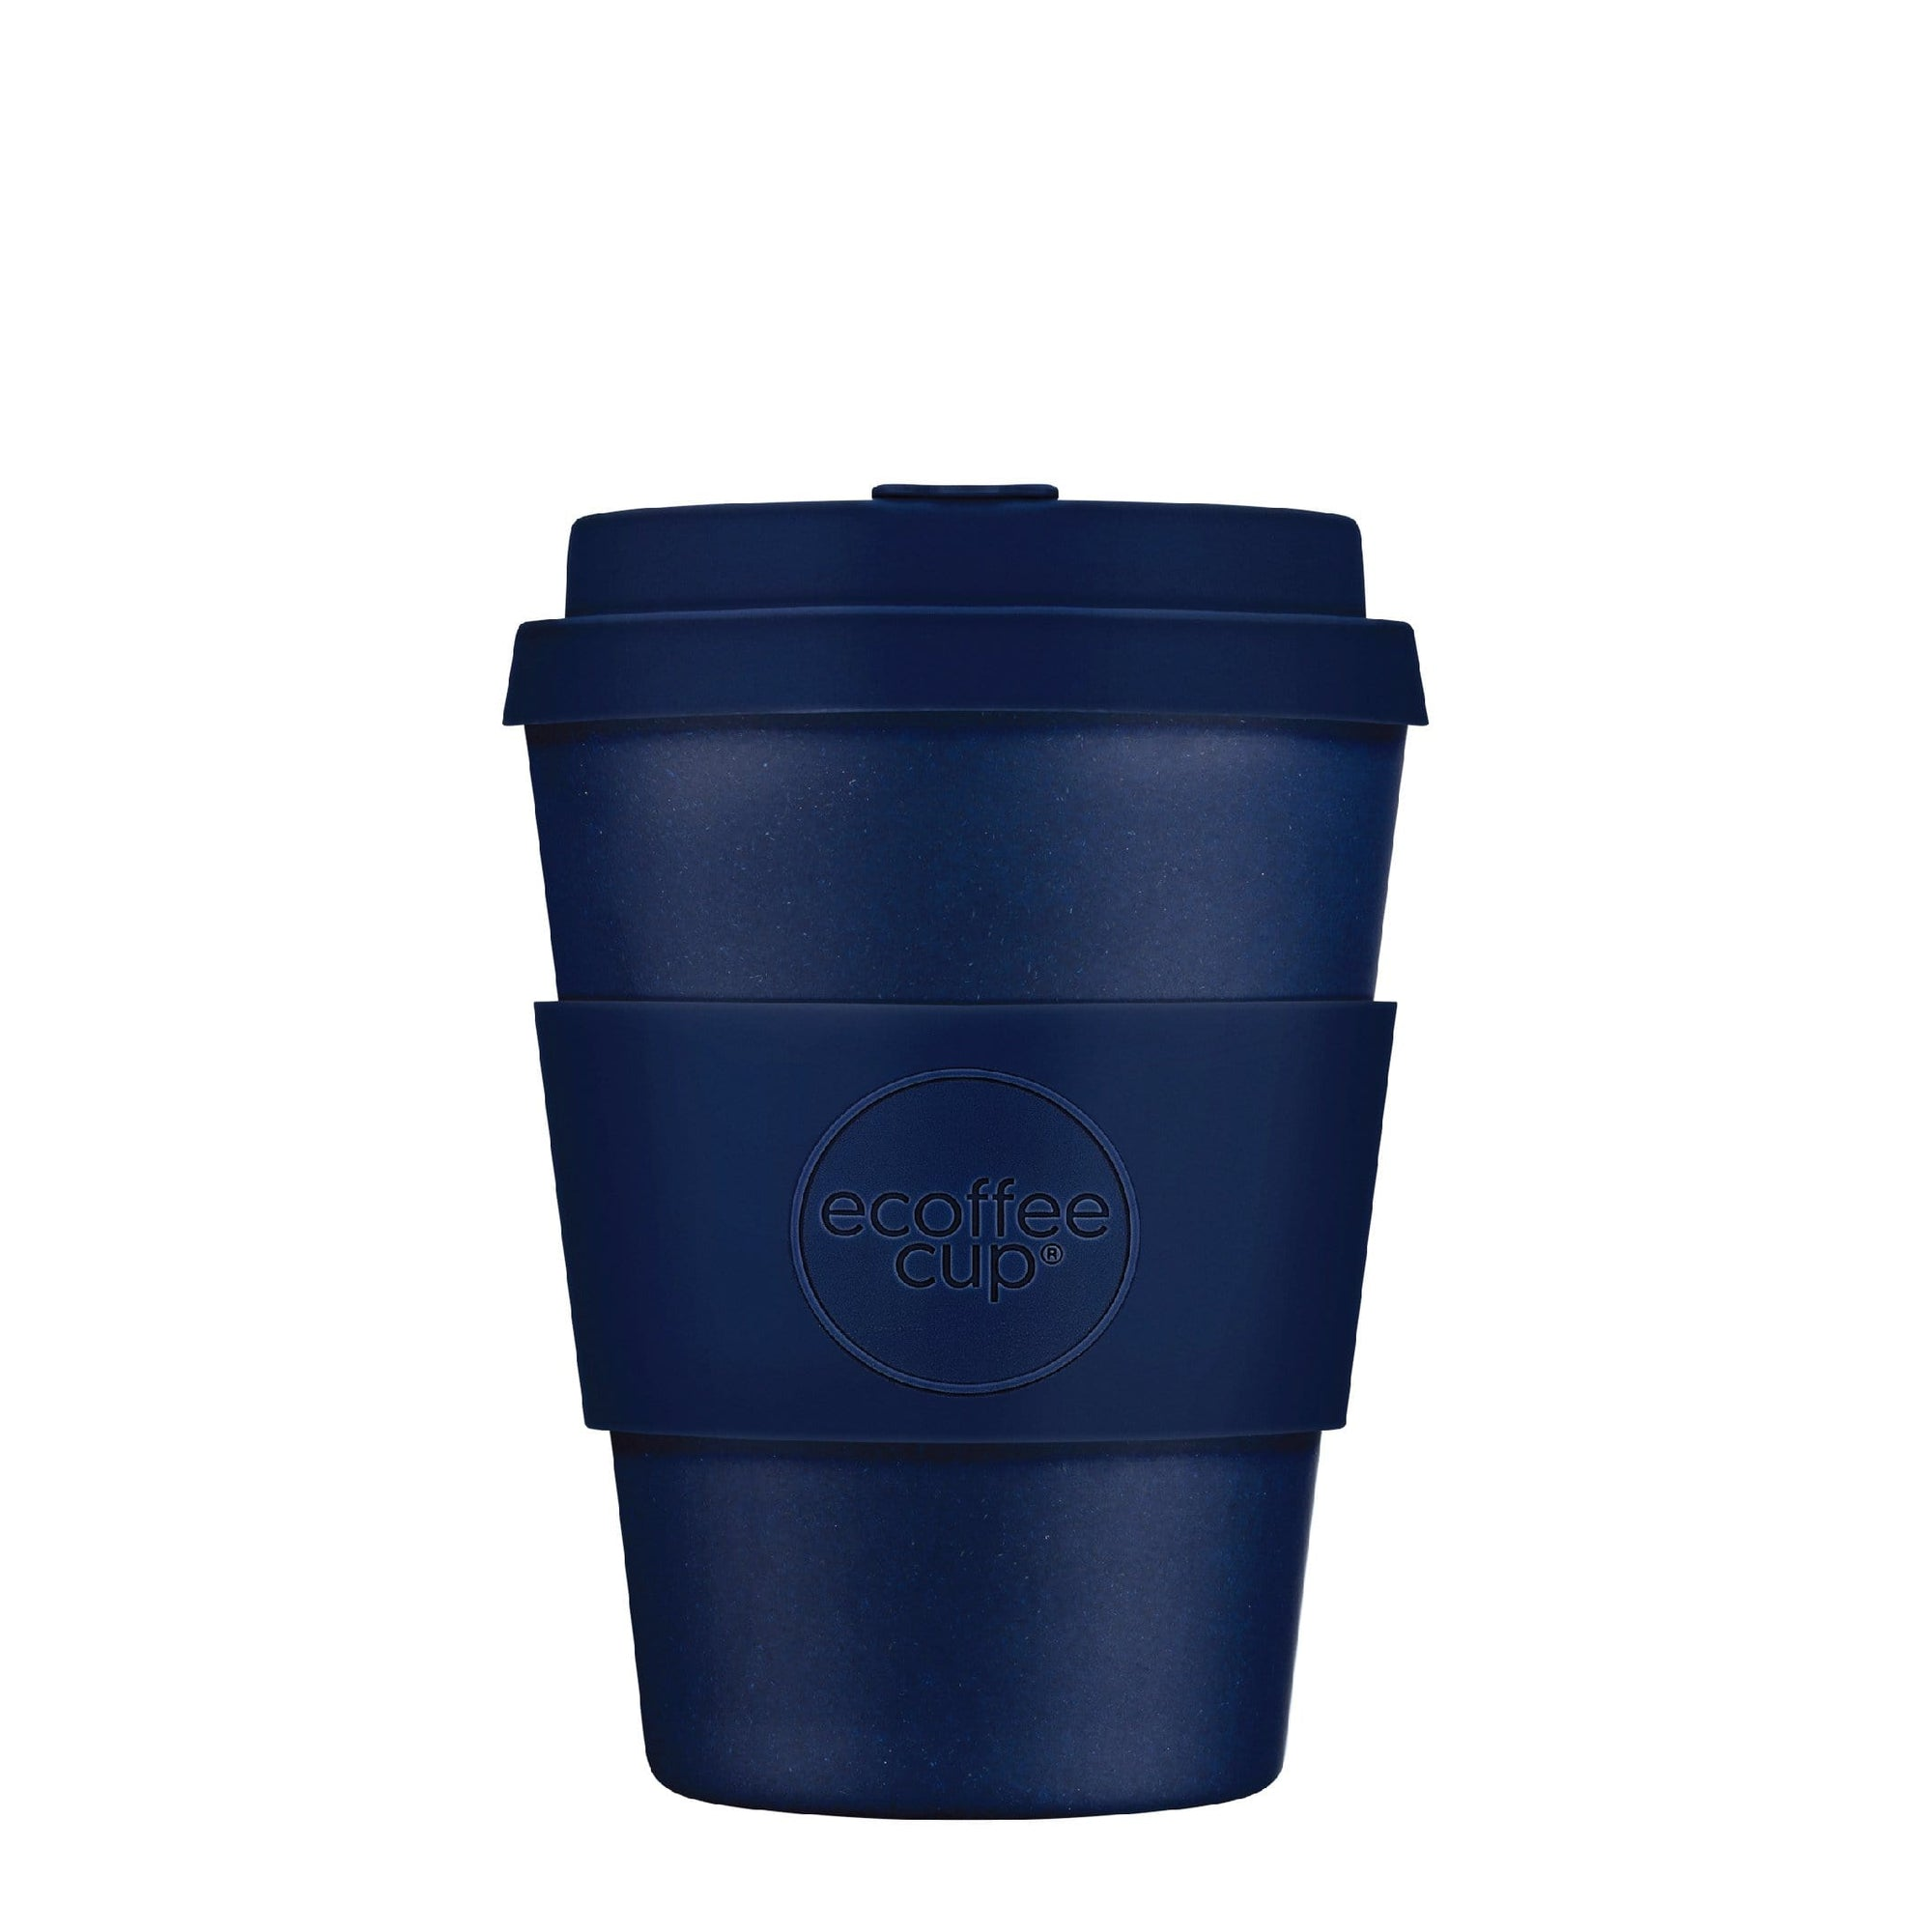 Ecoffee Cup - Dark Energy